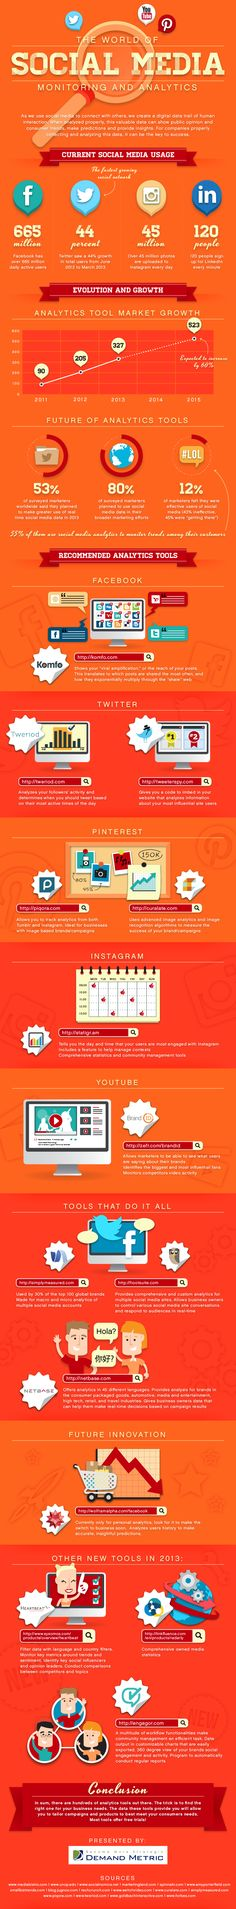 The World of Social Media Monitoring -14 Social Media Analytics Tools - infographic